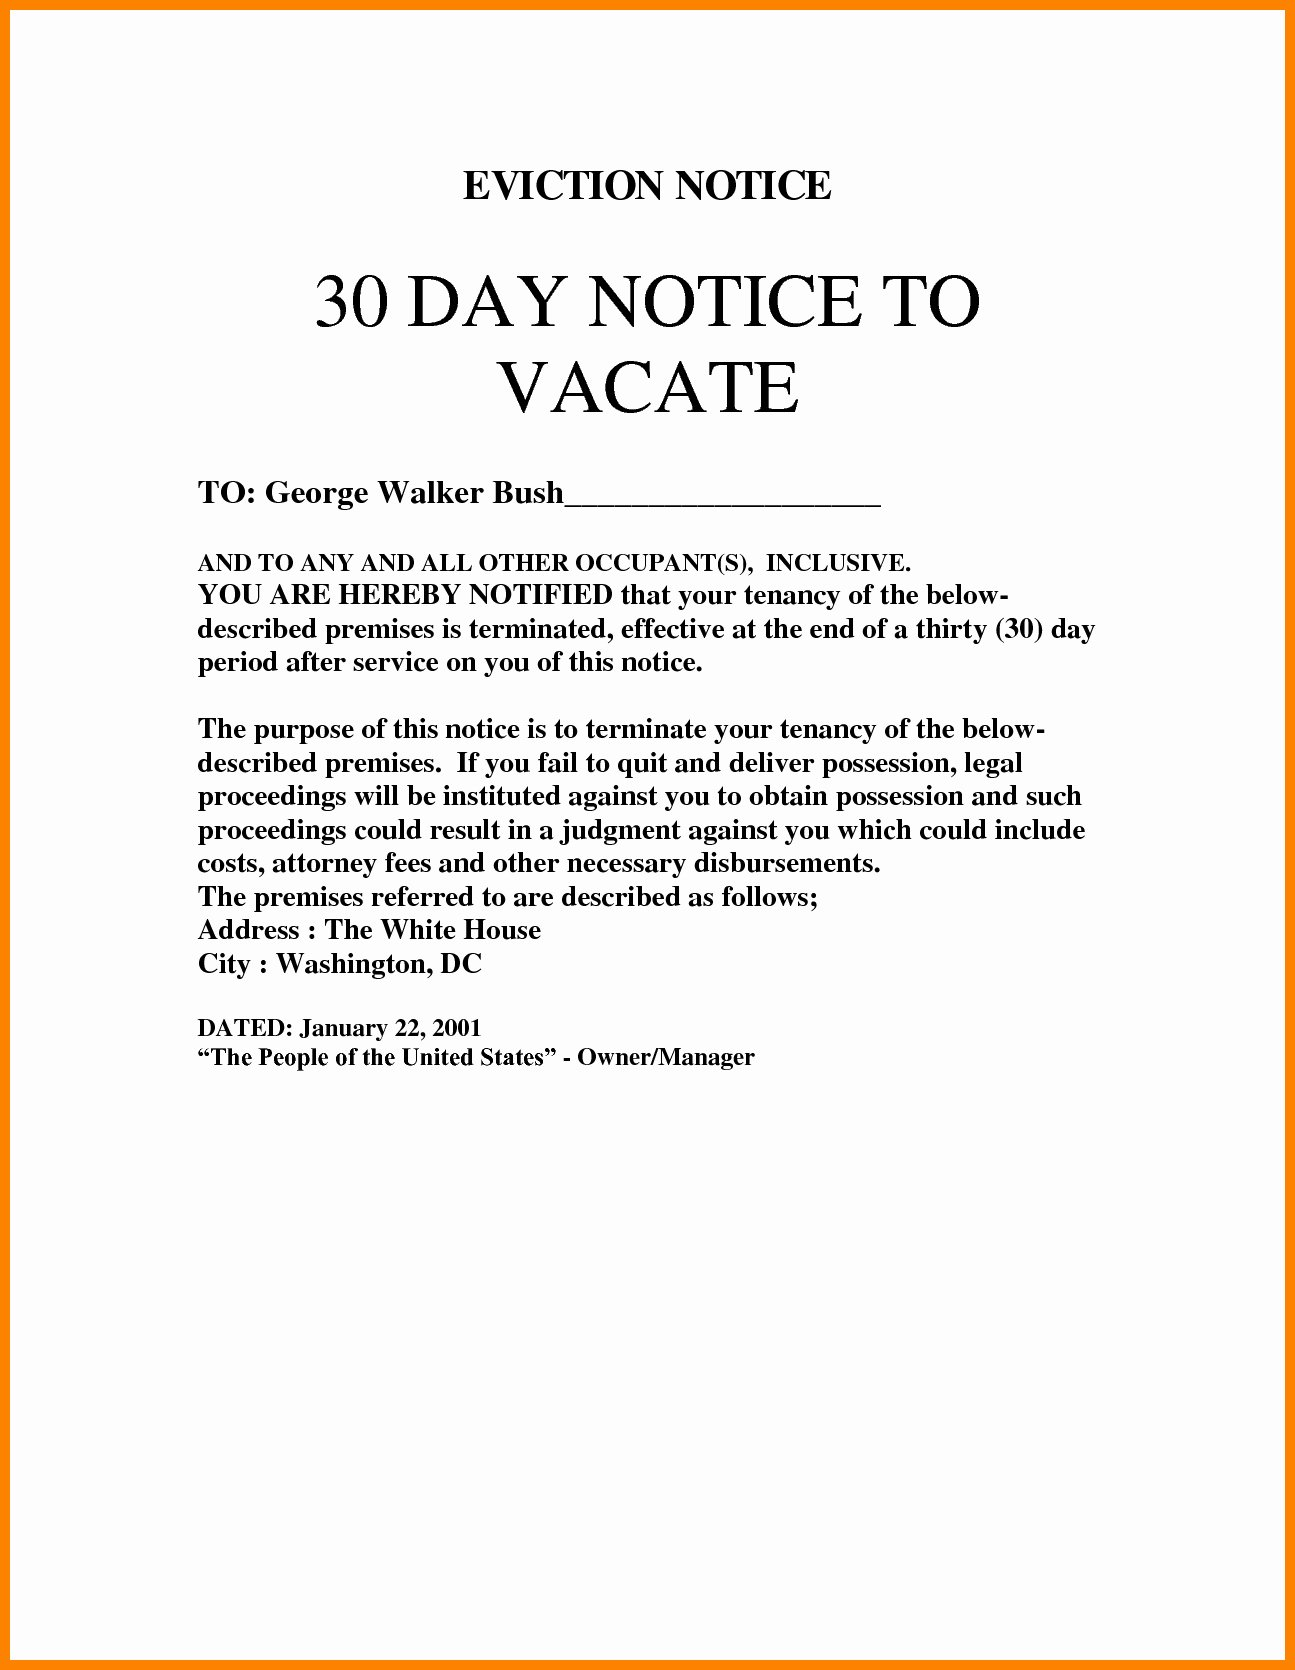 30 Day Eviction Notice form Awesome 30 Day Eviction Notice Template